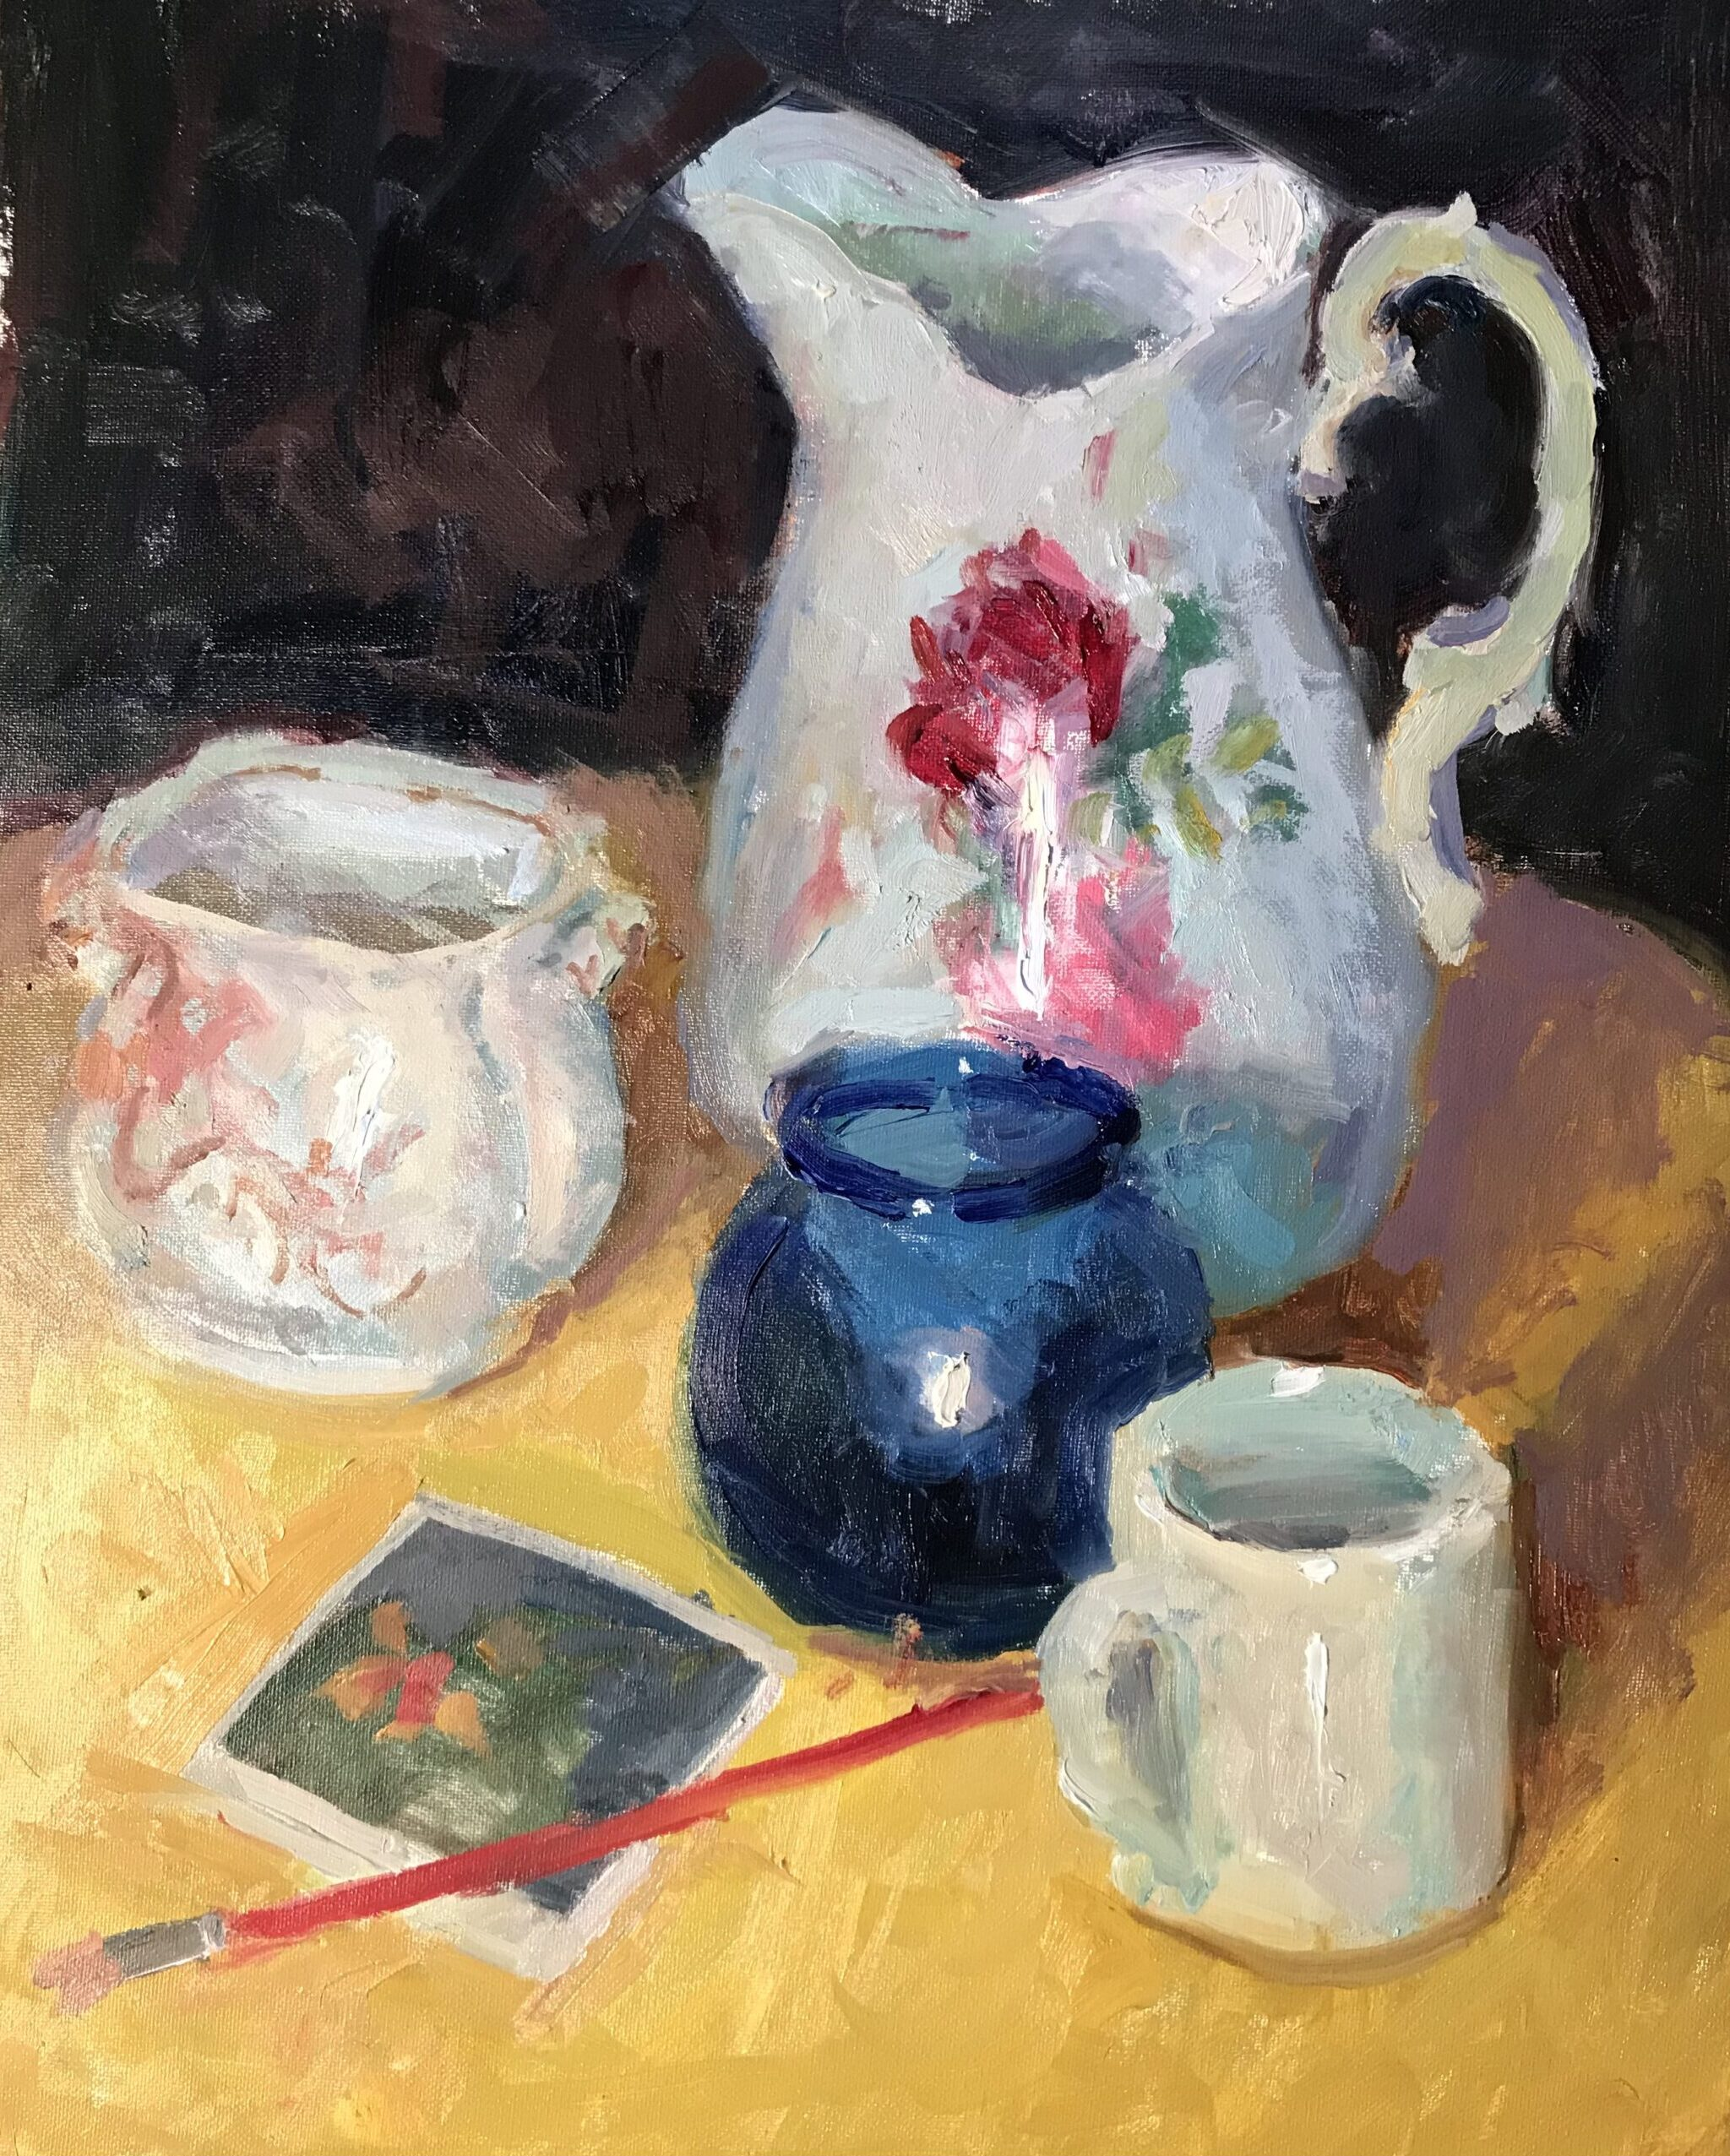 Still Life with Old Pitcher, Oil on Canvas, 20 x 16 Inches, by Susan Grisell, $750